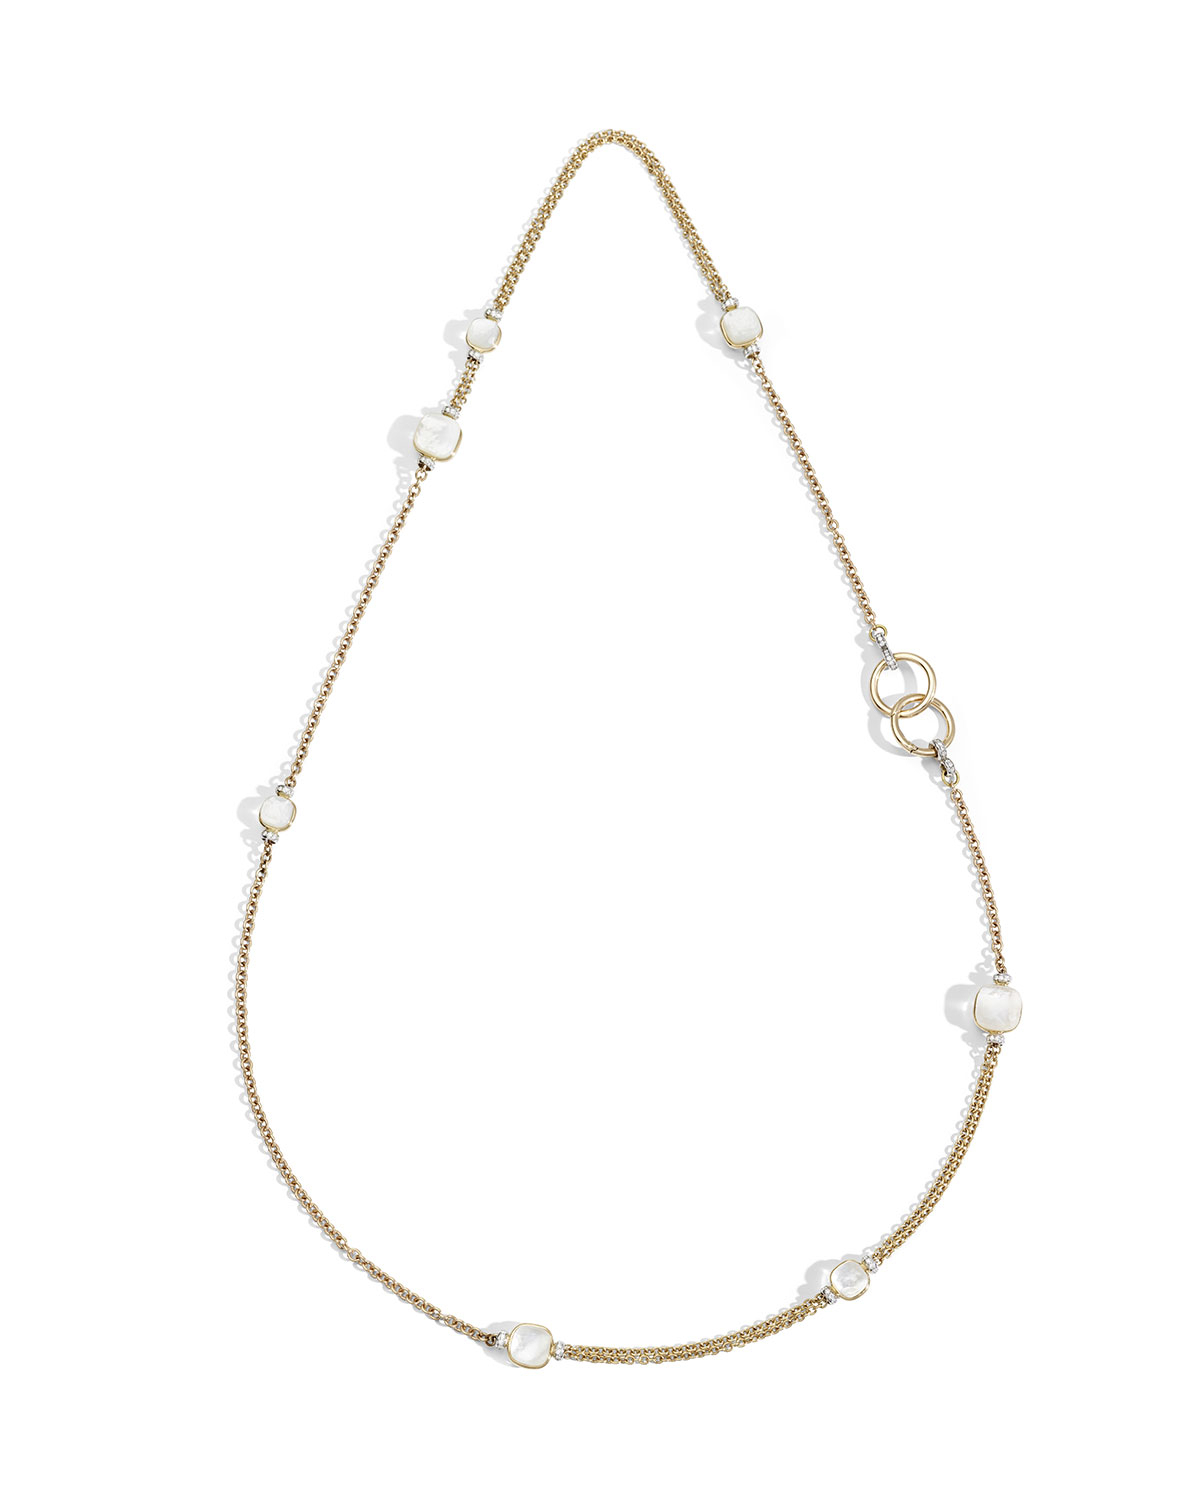 Nudo 18K White Topaz/mother Of Pearl & Diamond Sautoir Necklace With Regard To Current Diamond Sautoir Necklaces In Platinum (View 22 of 25)